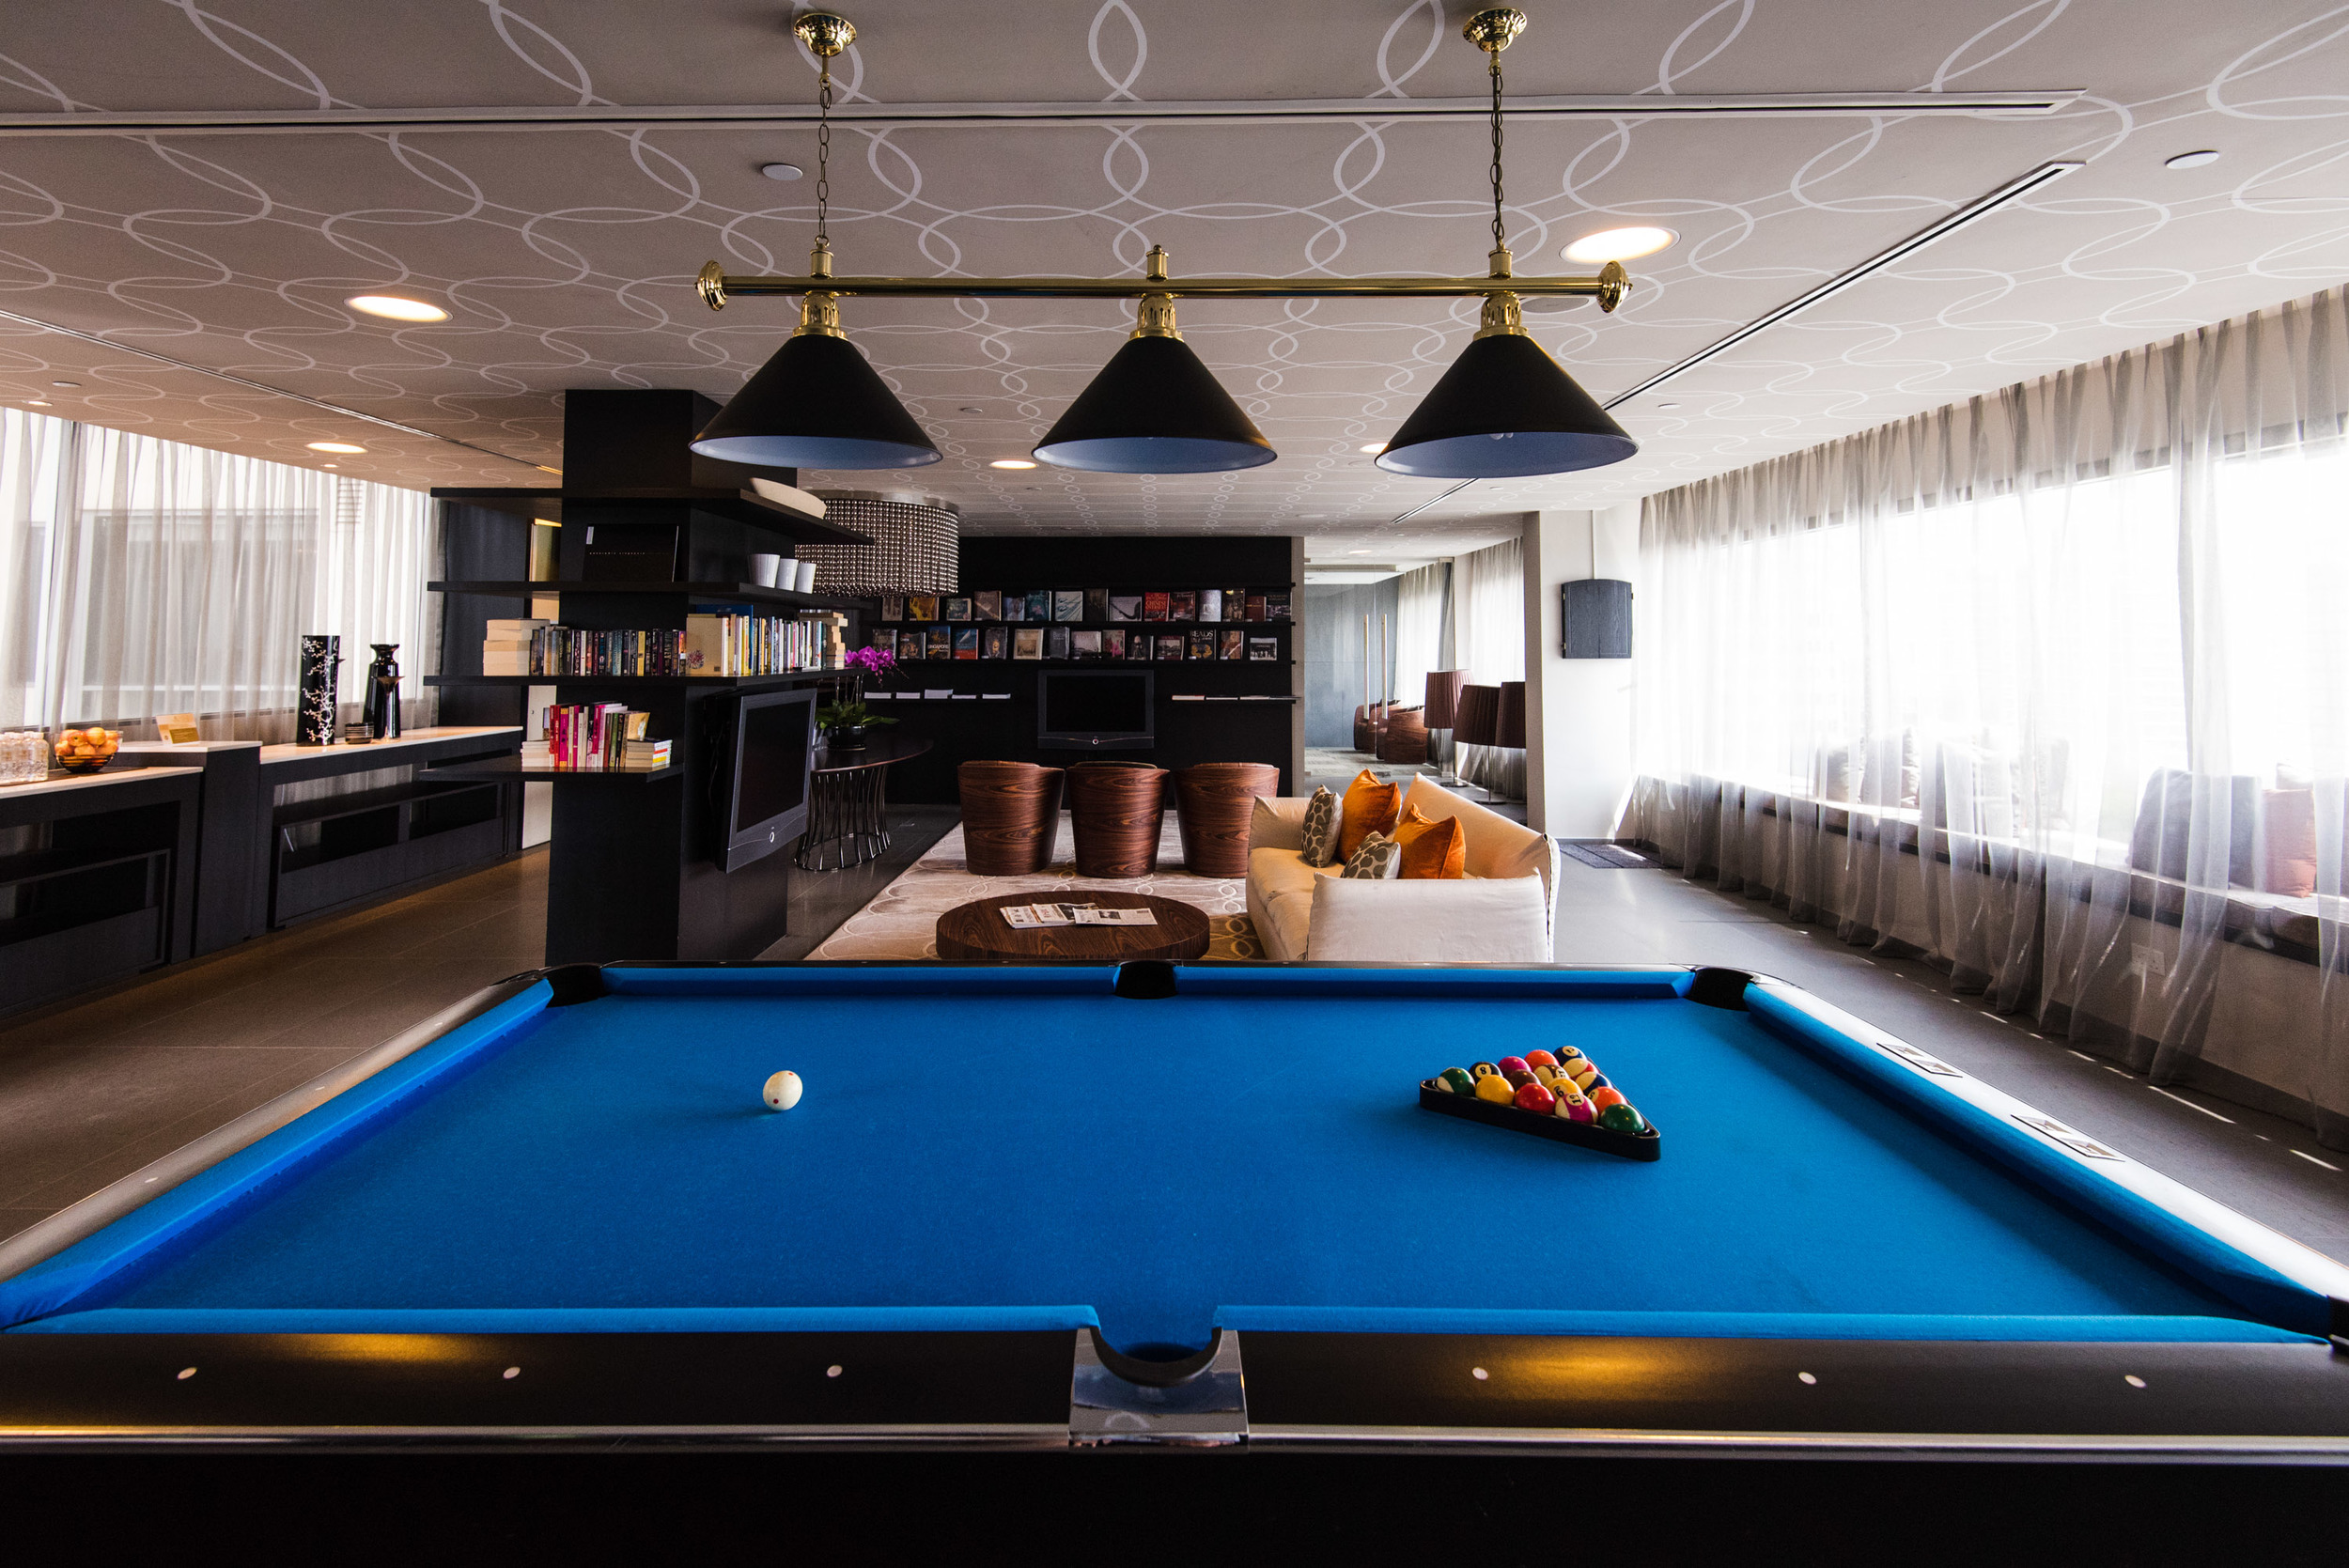 Pool Table in The Living Room